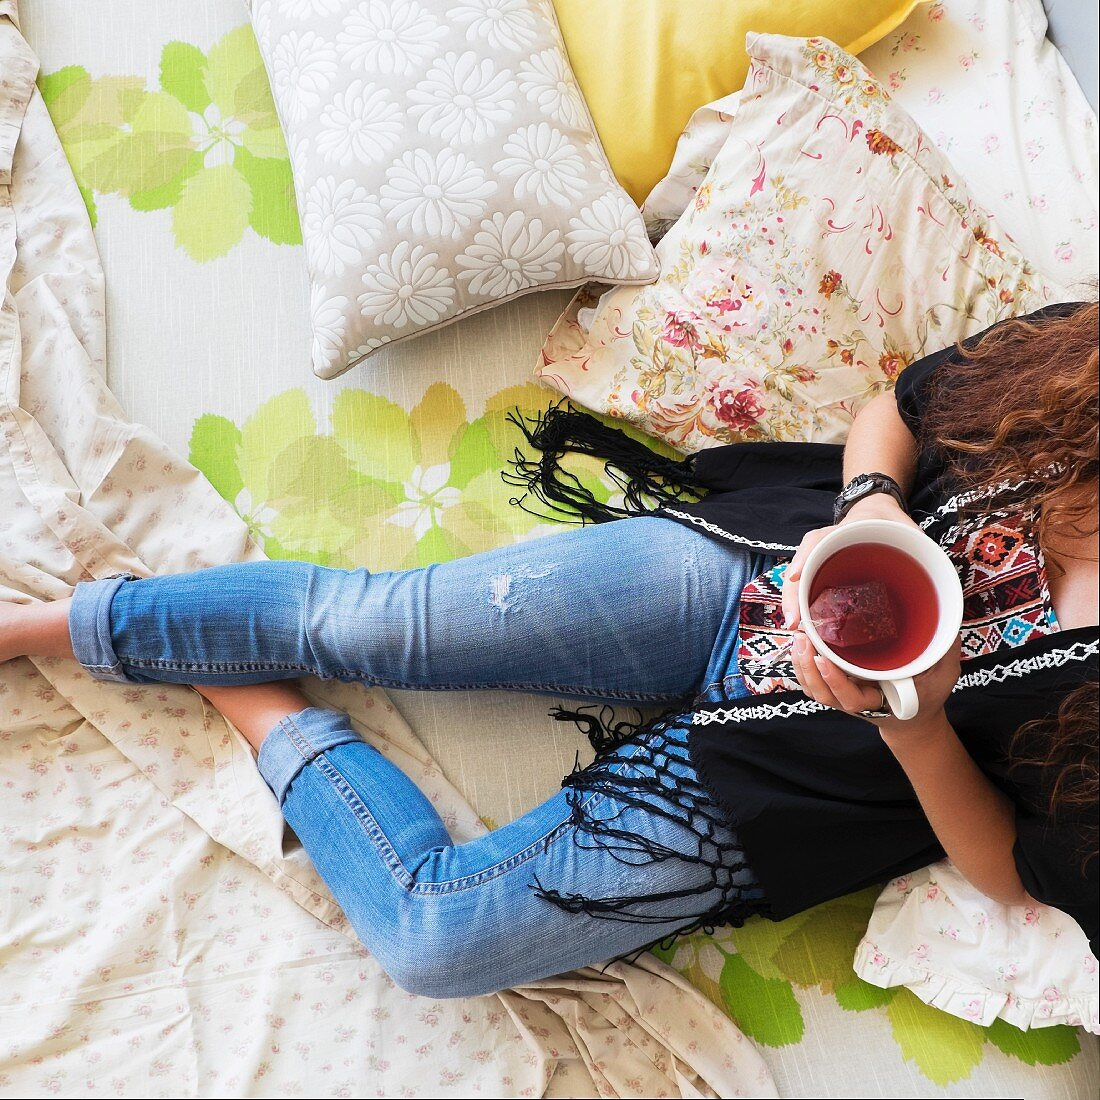 A woman lying on a bed with a cup of tea